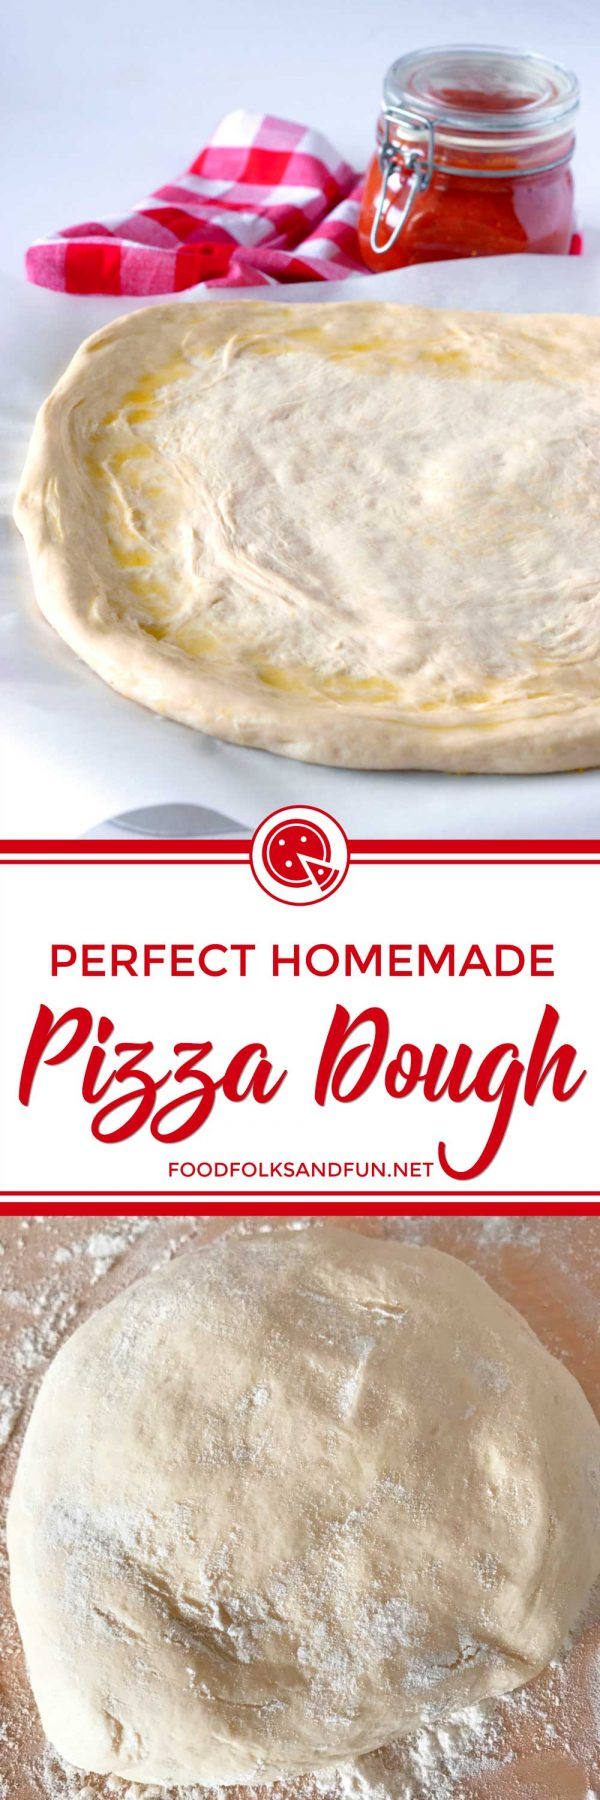 How to Make the Perfect Homemade Pizza Crust.